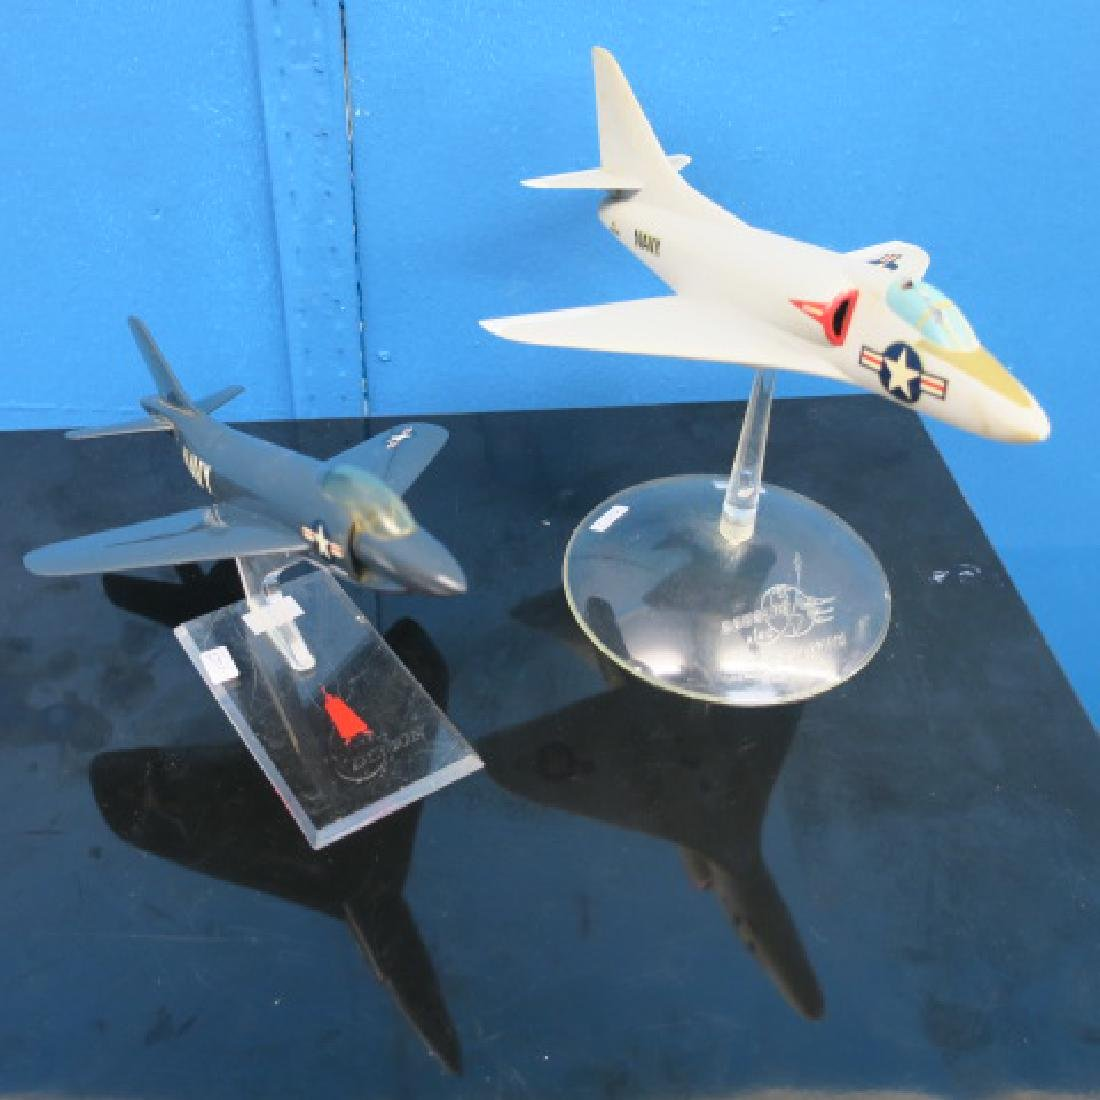 Manufacturers Models of F3H DEAMON & A4D SKYHAWK: